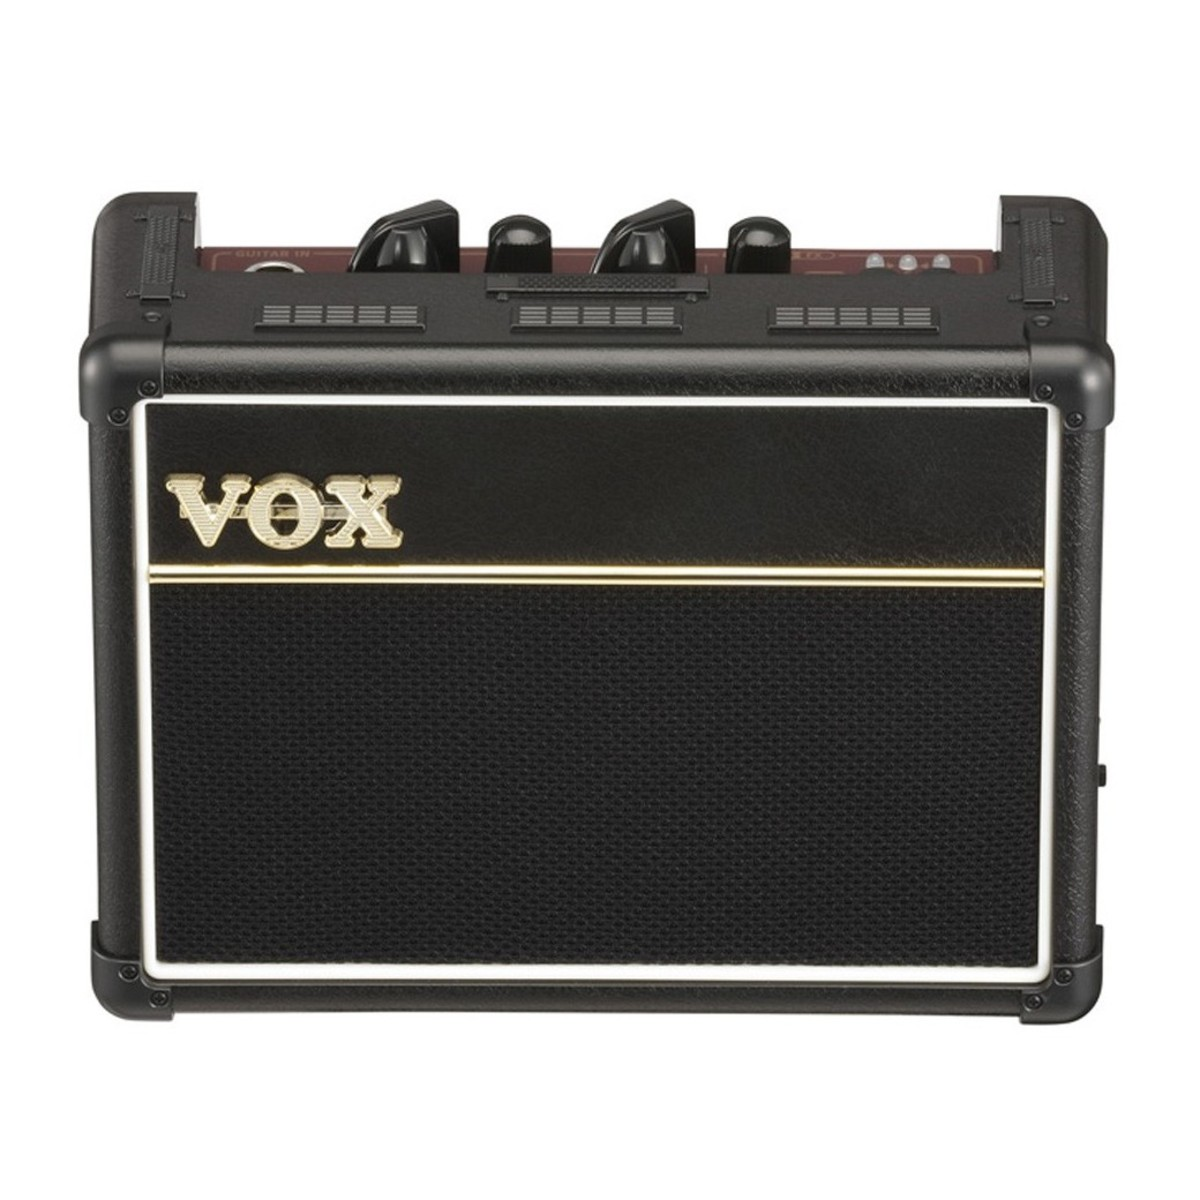 I need some help dating a vox amp